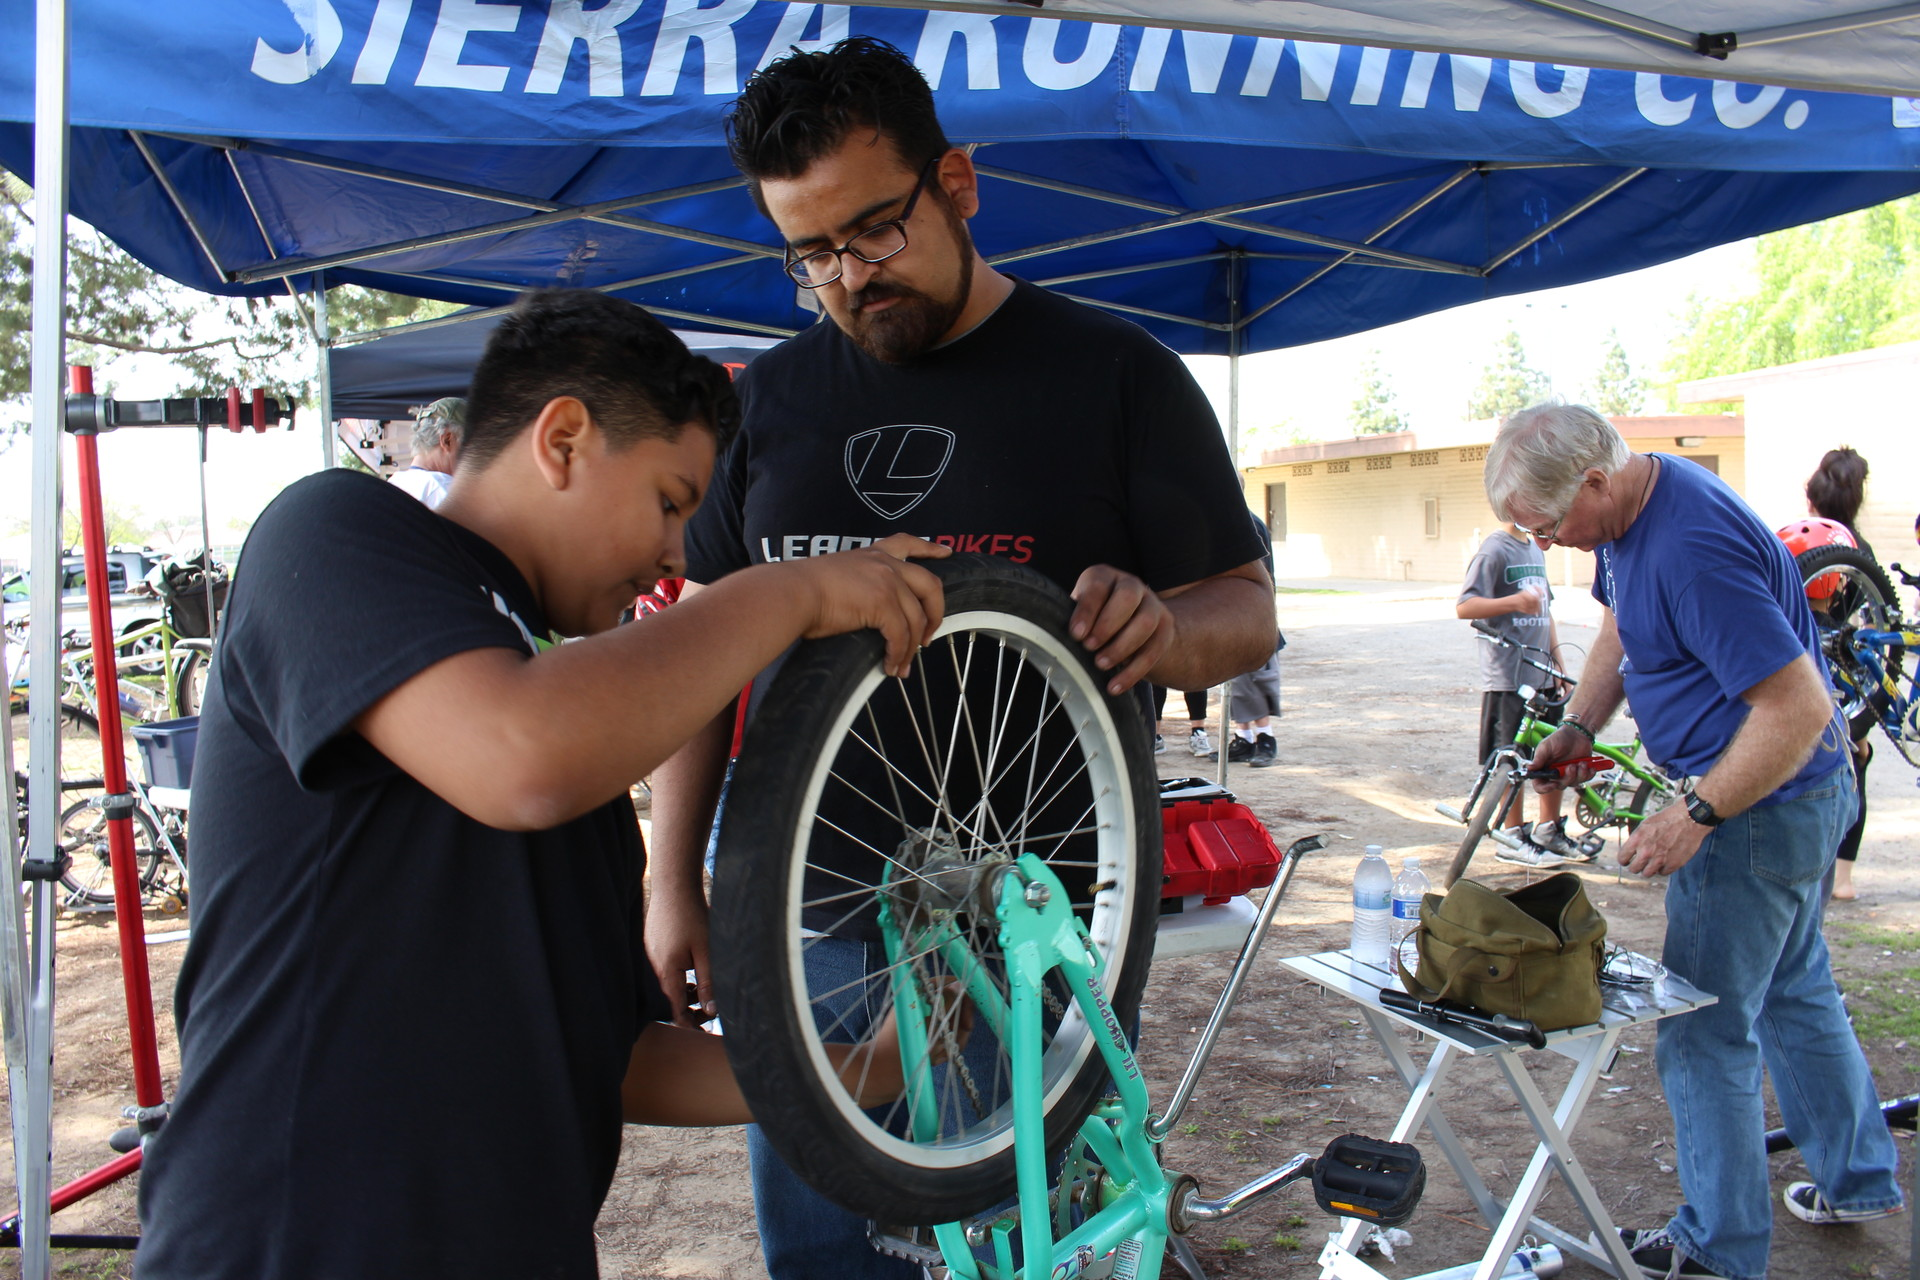 Jaime Rangel, 26, helps Gustavo Ruiz, 12, fix the flat tire on his bike at the Mosqueda Community Center park. Rangel says he makes a point of showing kids and adults who may not have funds to repair their bikes at a shop, how to fix their bikes on their own.